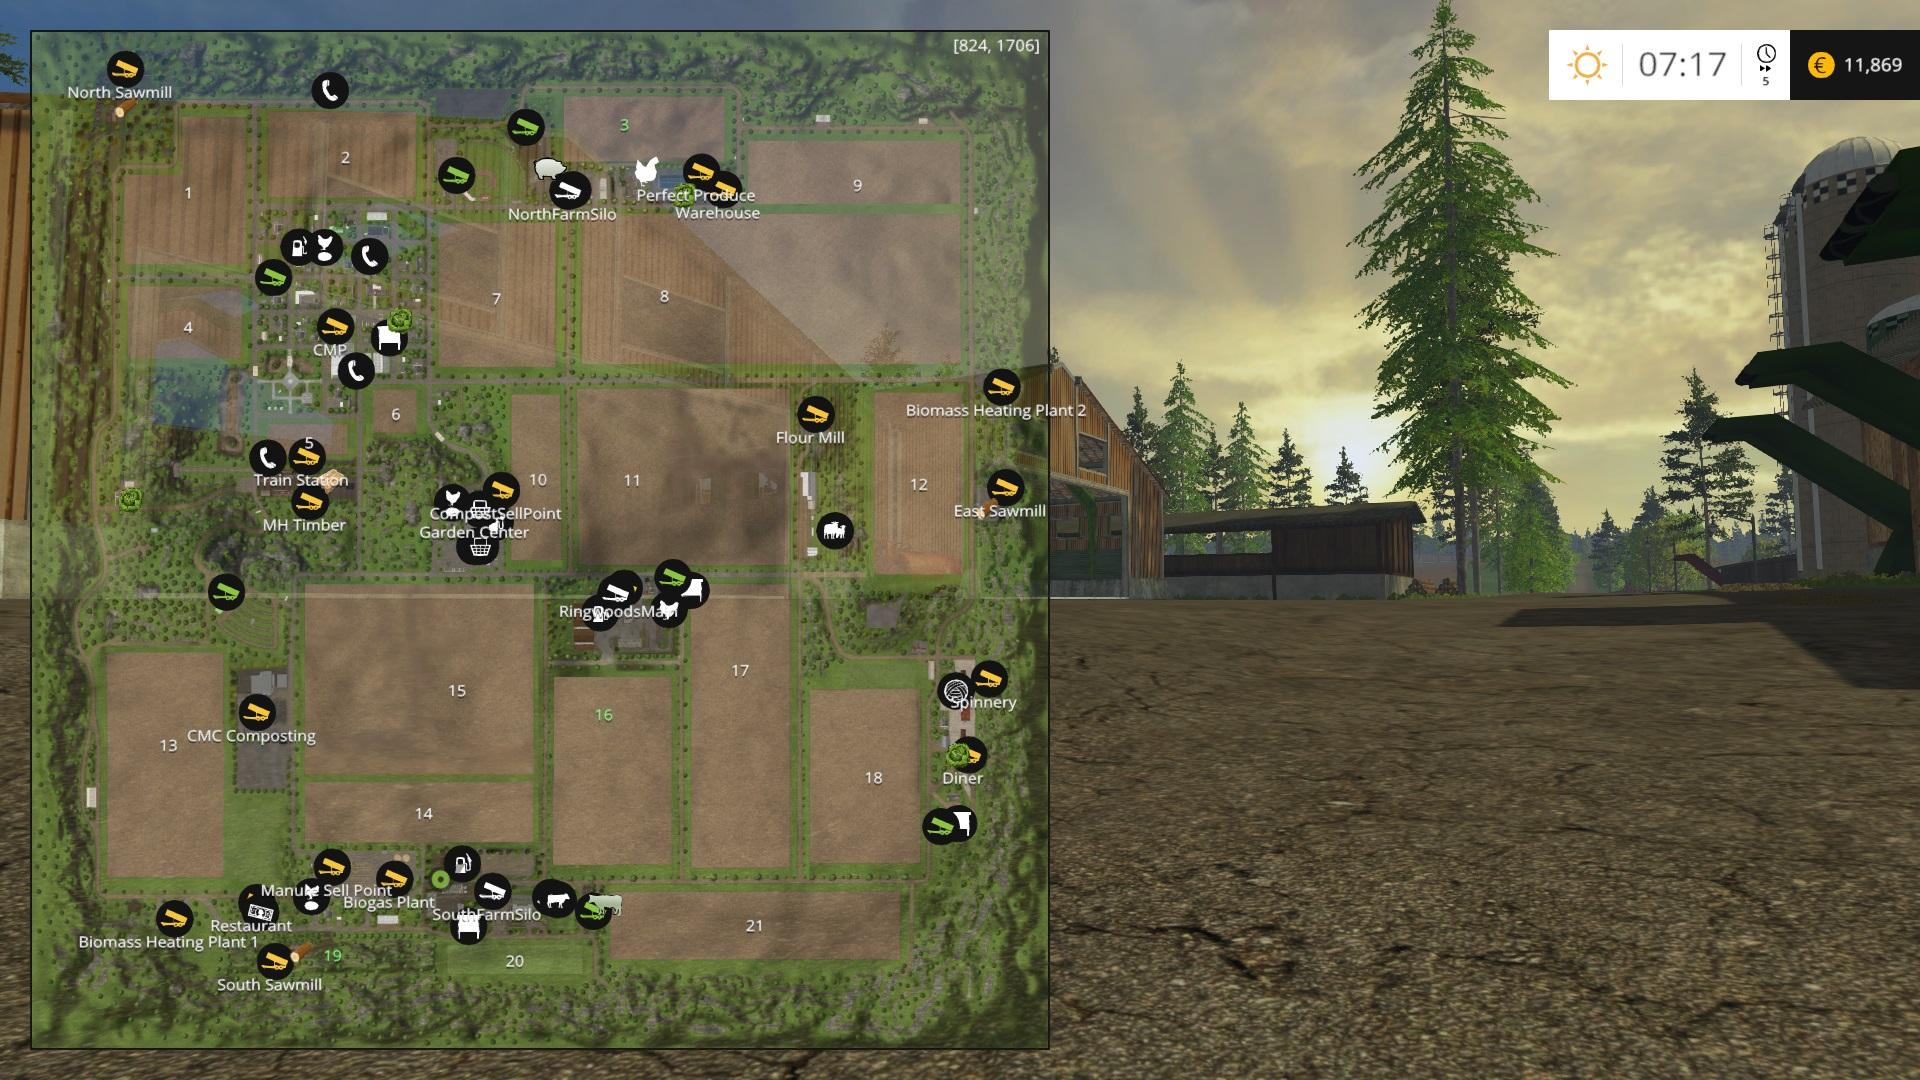 fs17 how to start with all fields owned